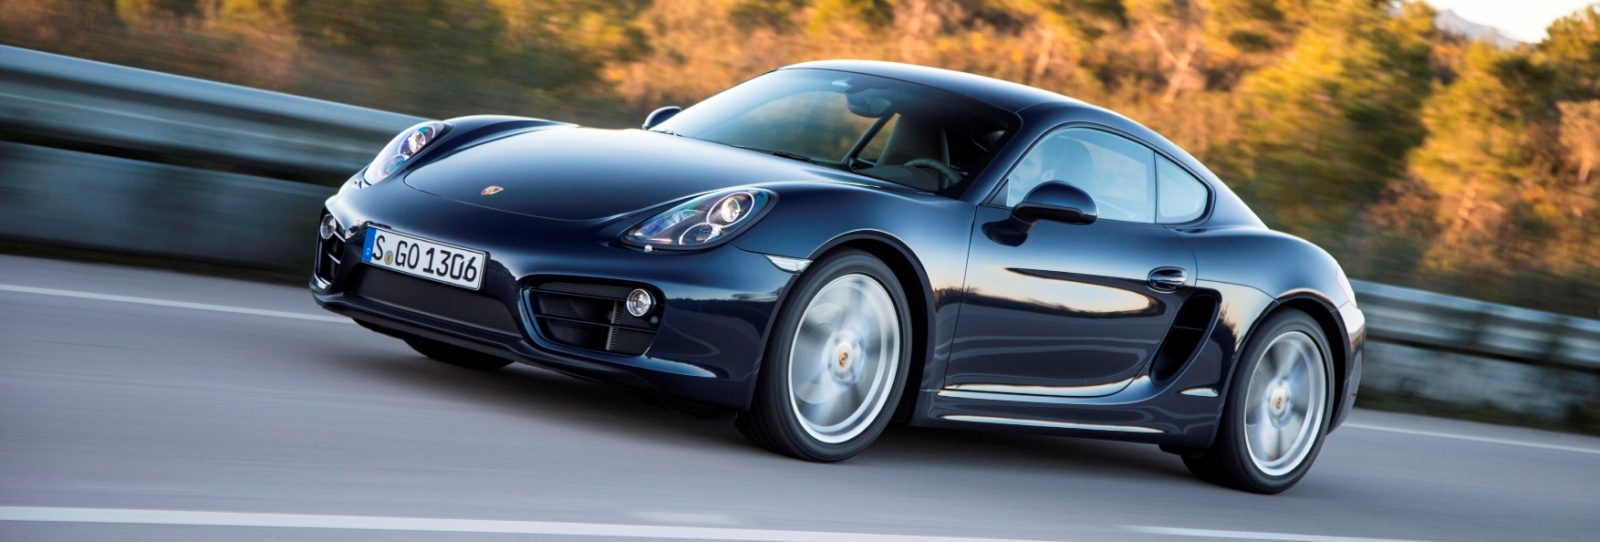 CarRevsDaily - Porsche CAYMAN Buyers Buide Photos 23